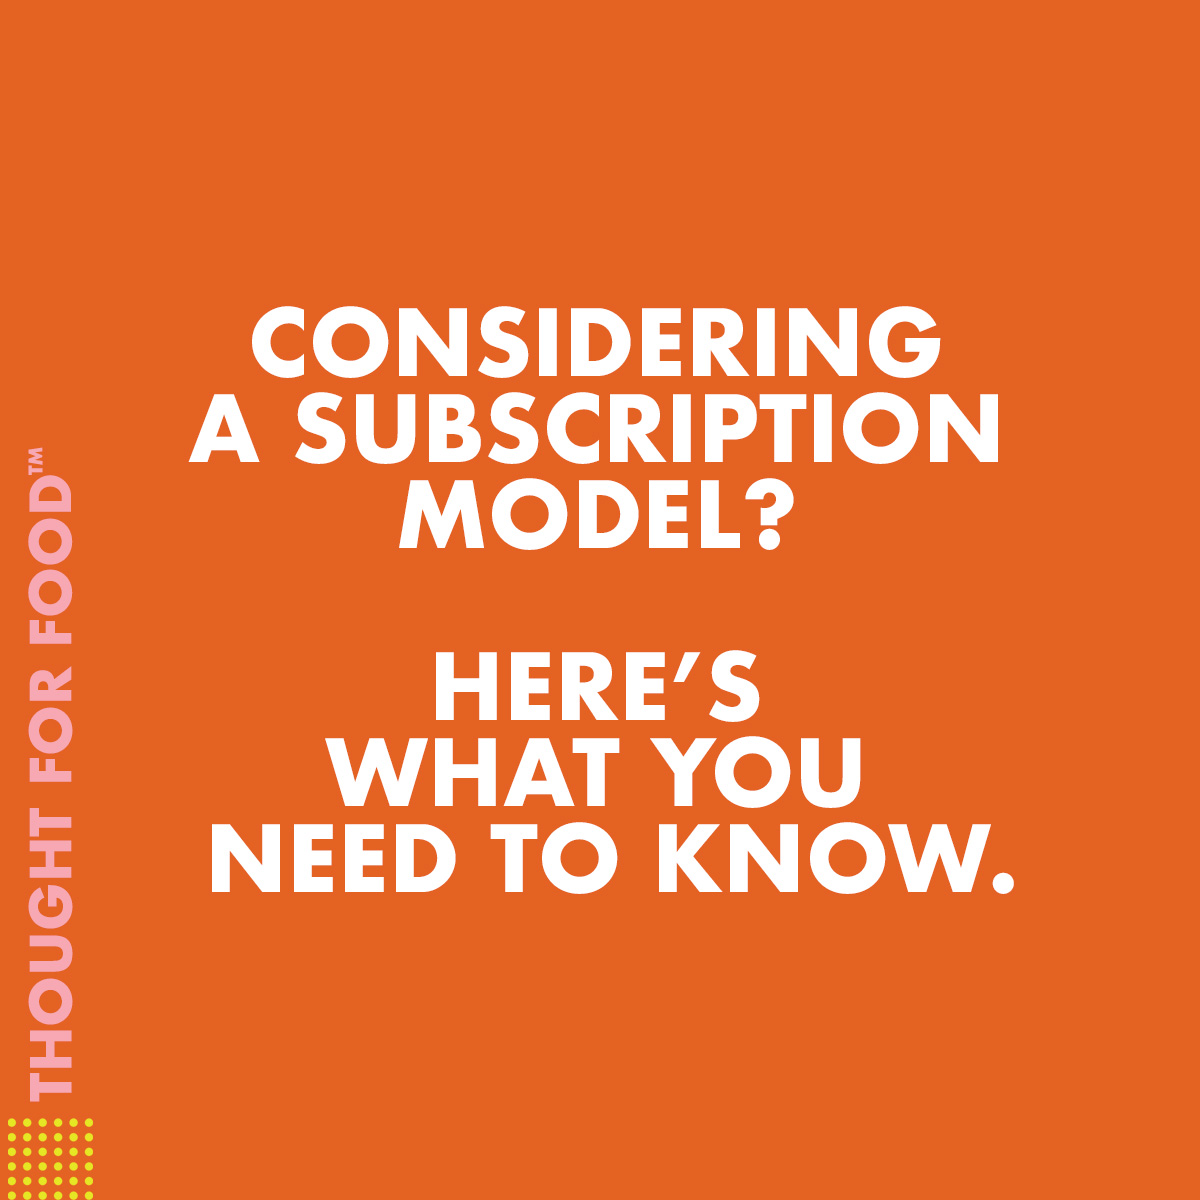 Considering a subscription model? Here's what you need to know.